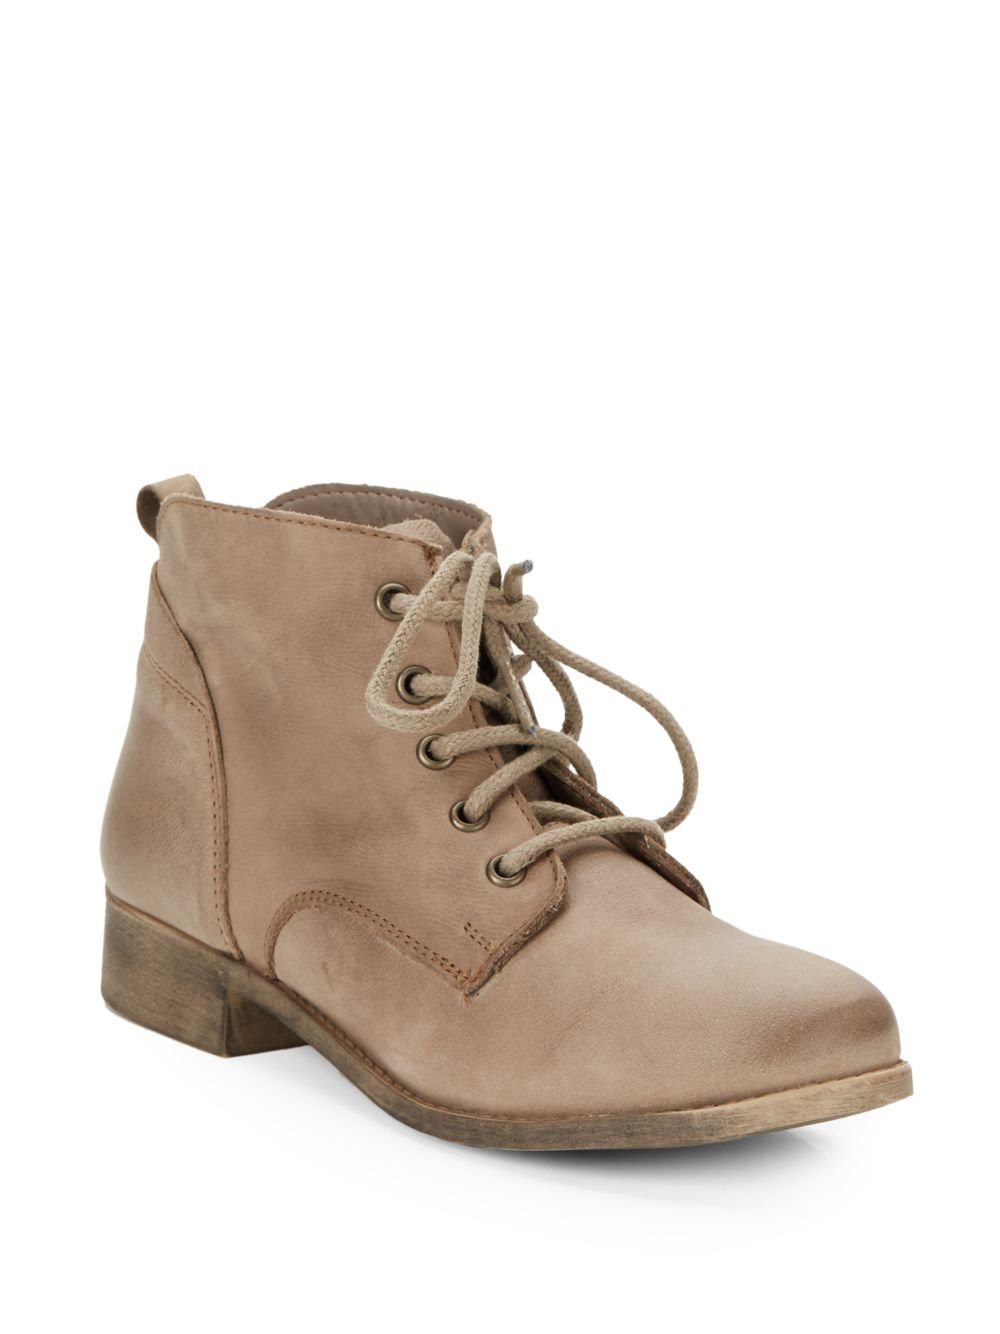 Steve madden Rubin Leather Lace-up Ankle Boots in Brown for Men | Lyst